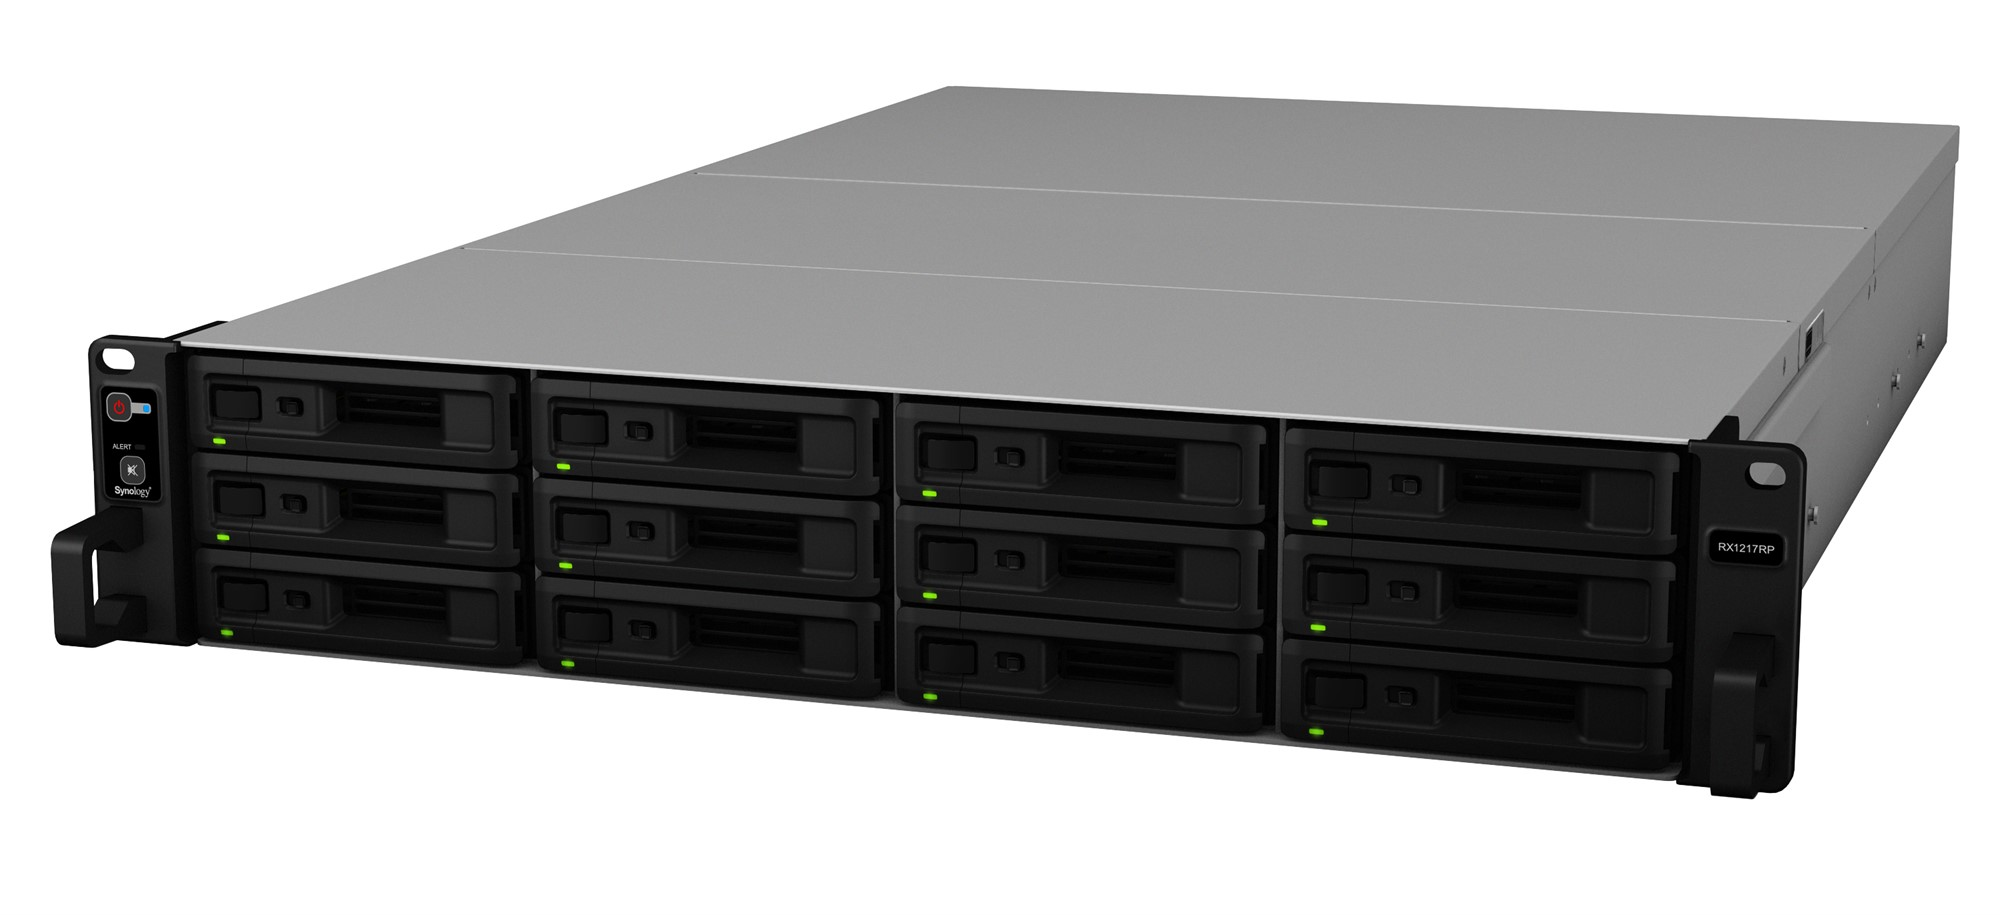 SYNOLOGY RX1217RP/48TB-GOLD 12 BAY NAS